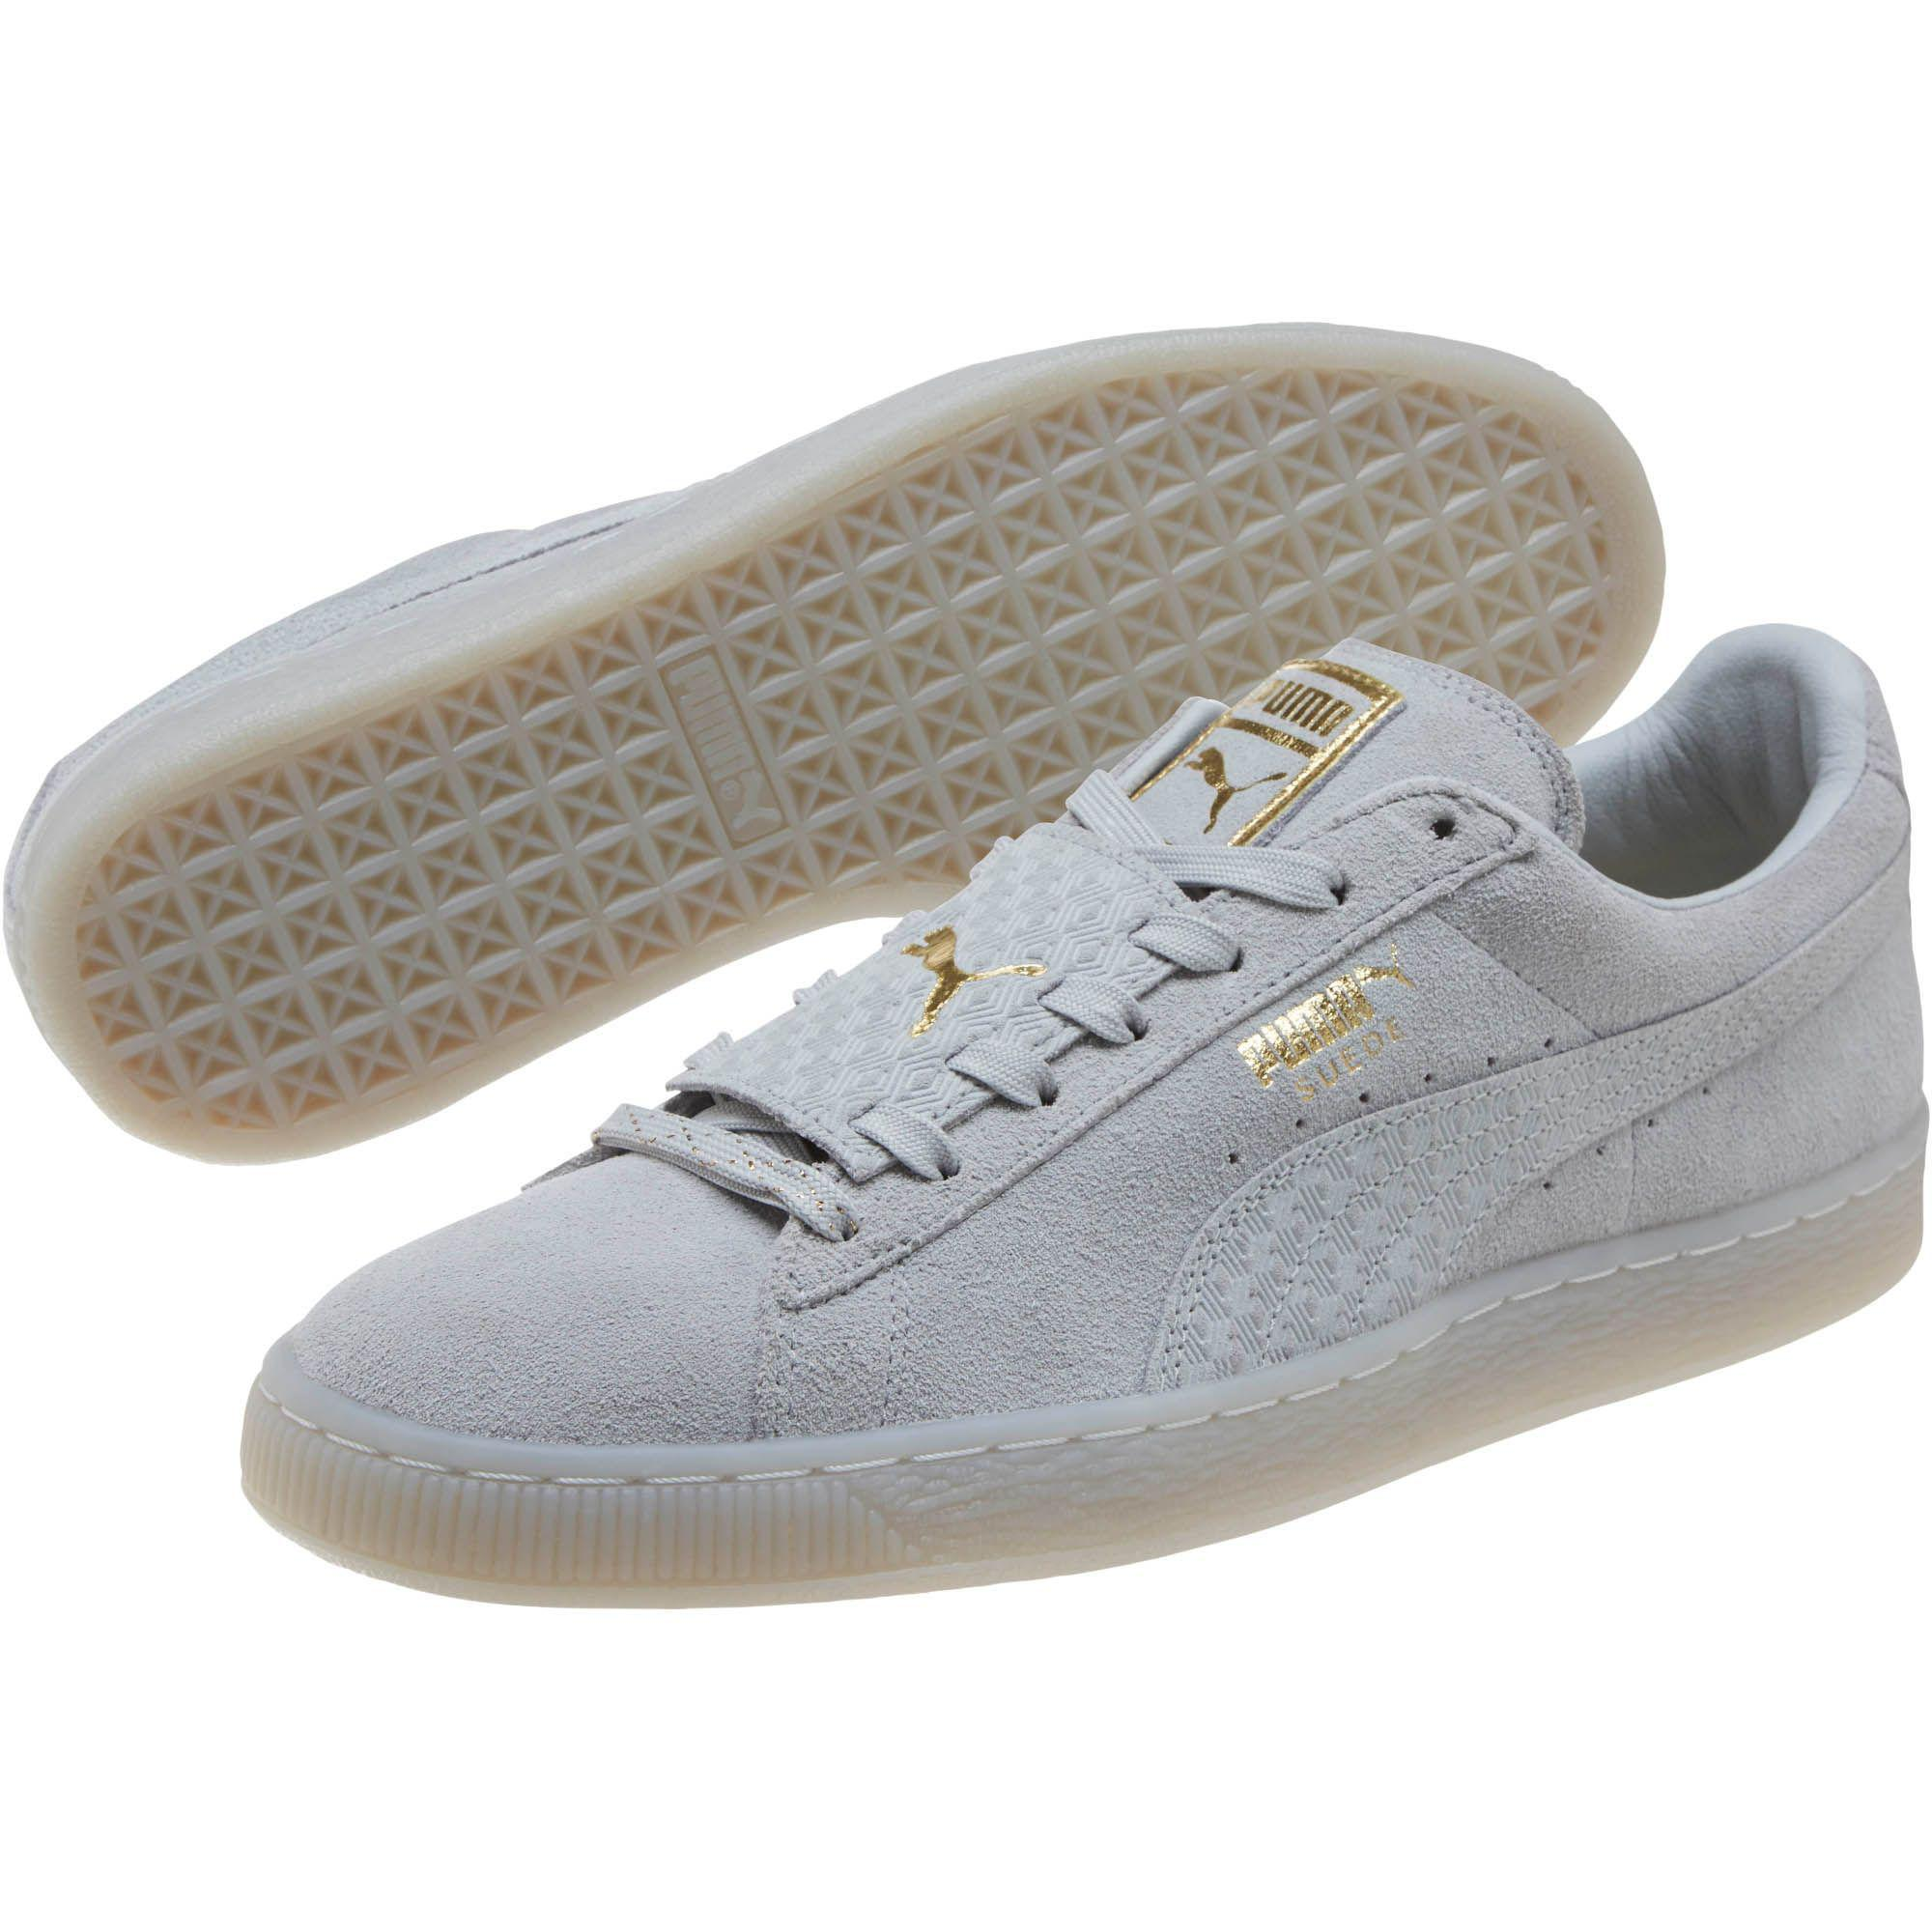 Lyst - PUMA Suede Epic Remix Men s Sneakers in Gray for Men 68a97fc74